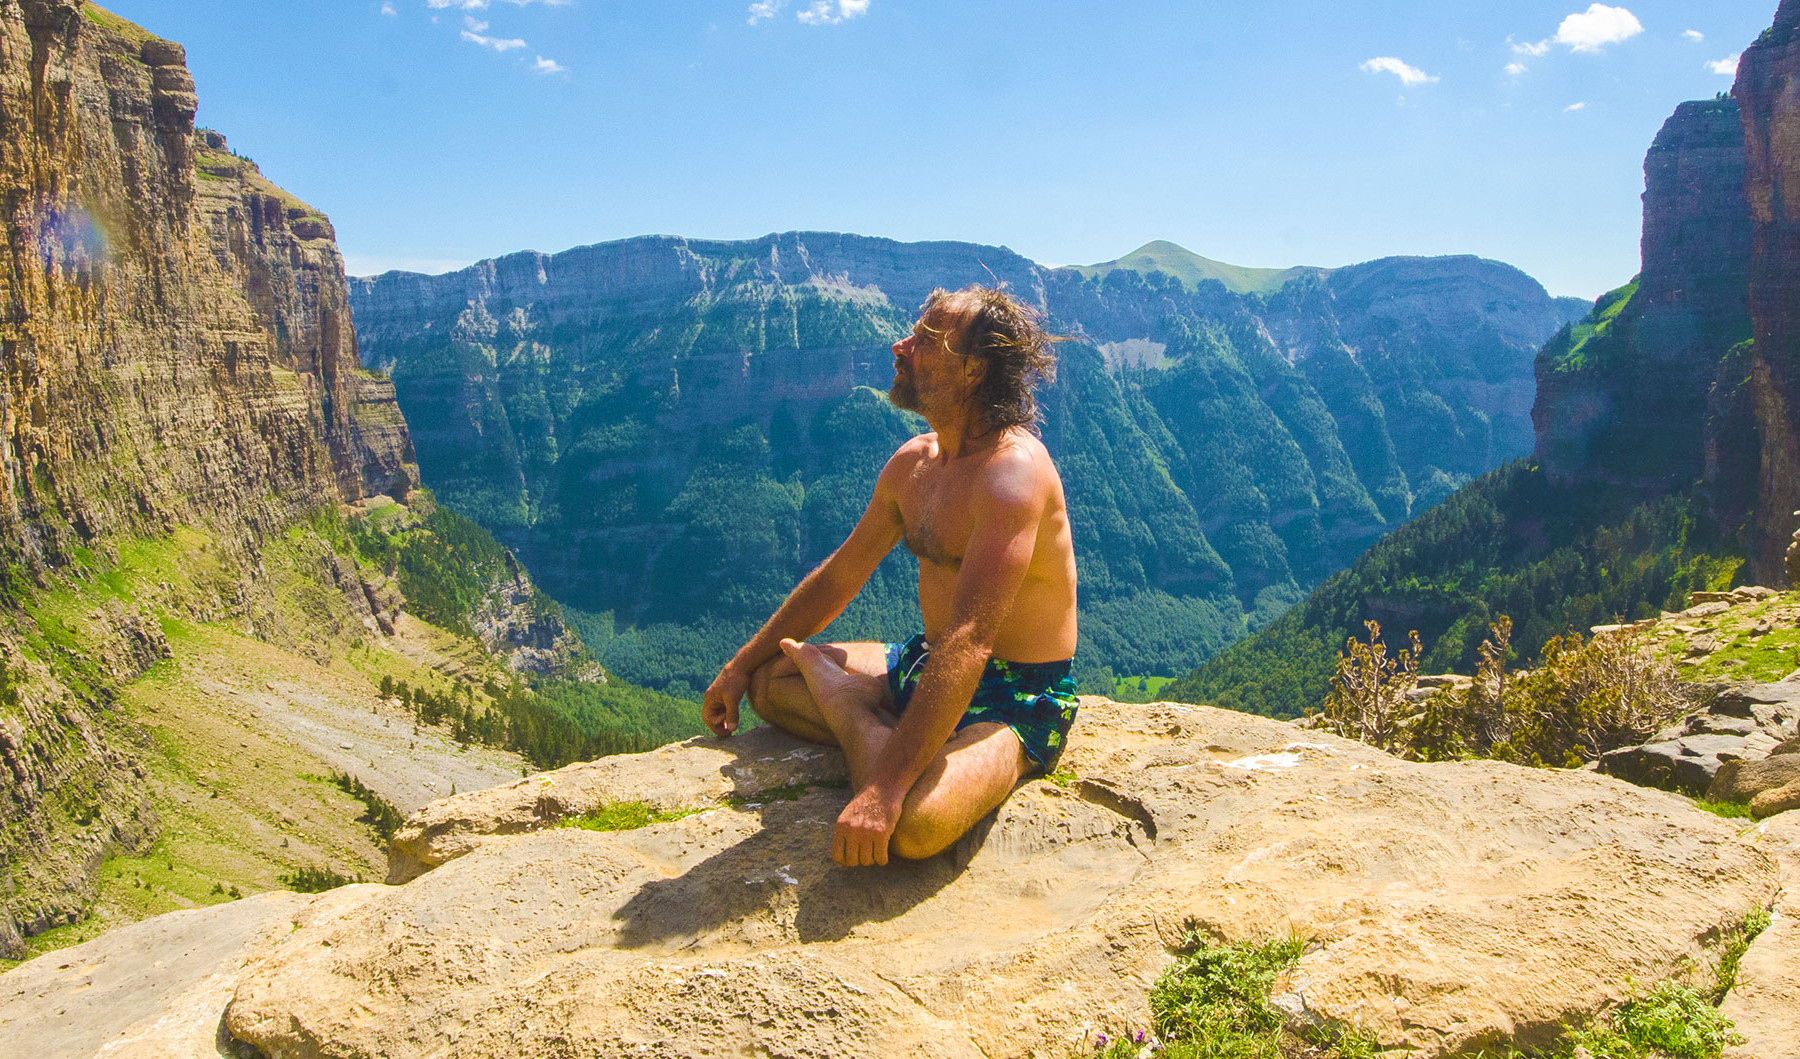 wim-hof-method-spain-pyrenees-lotus-summer-expedition.jpg